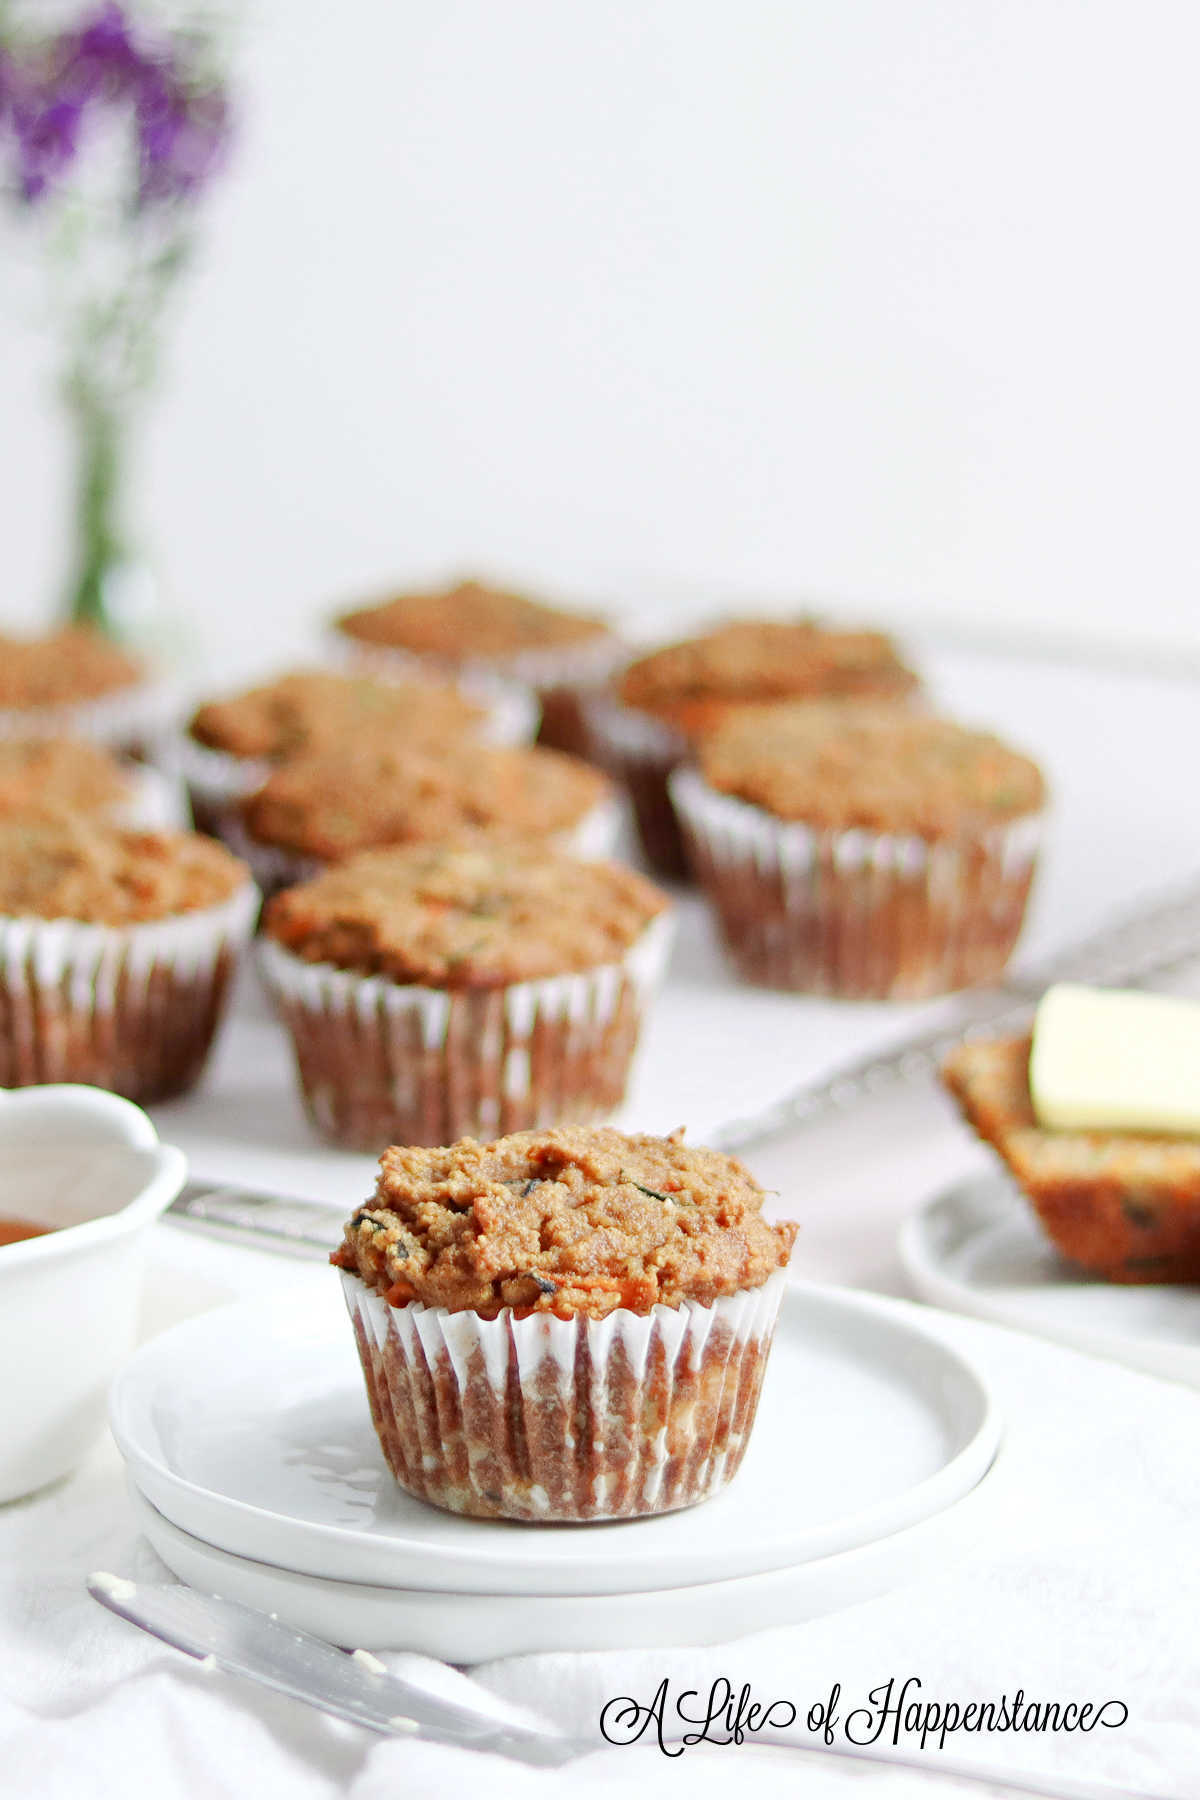 The healthy muffin on a small white plate with the remaining muffins in the background.